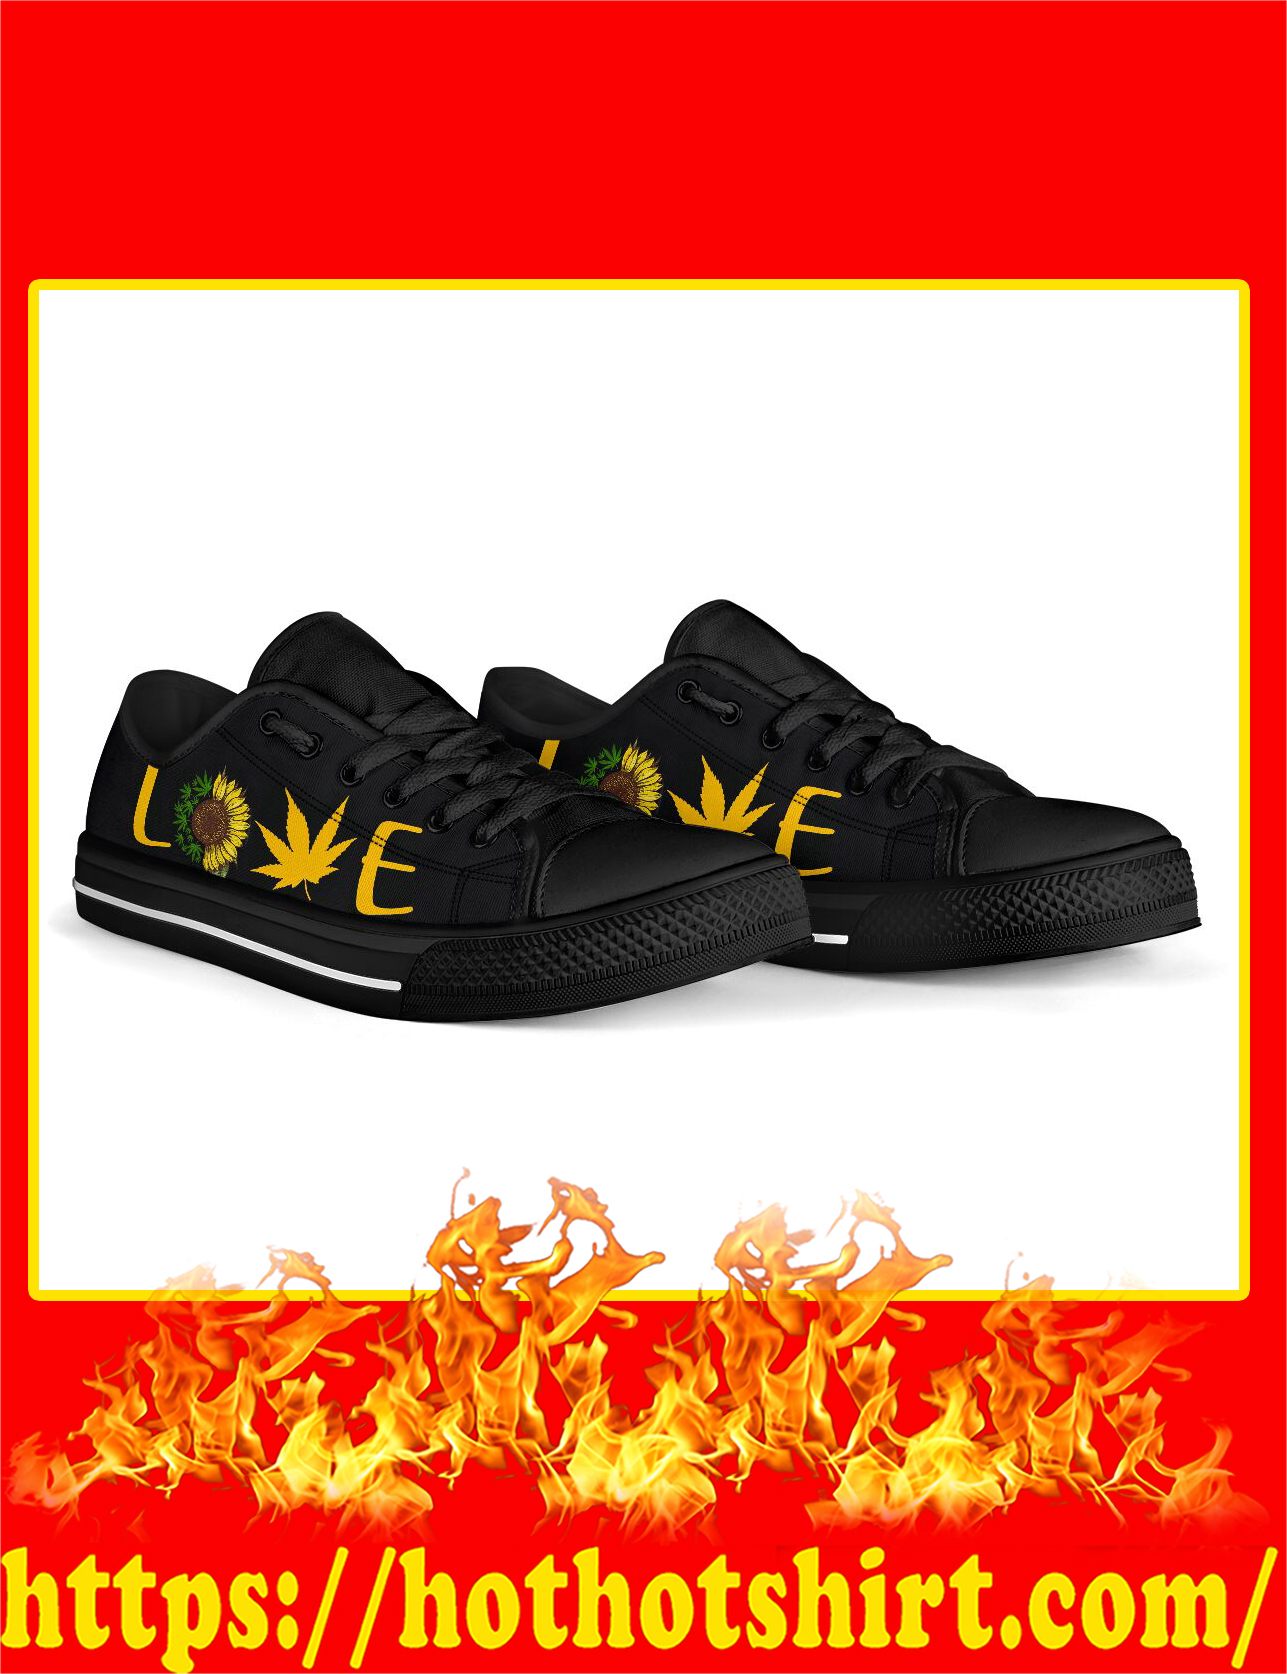 Love Cannabis Sunflower Low Top Shoes - Pic 3